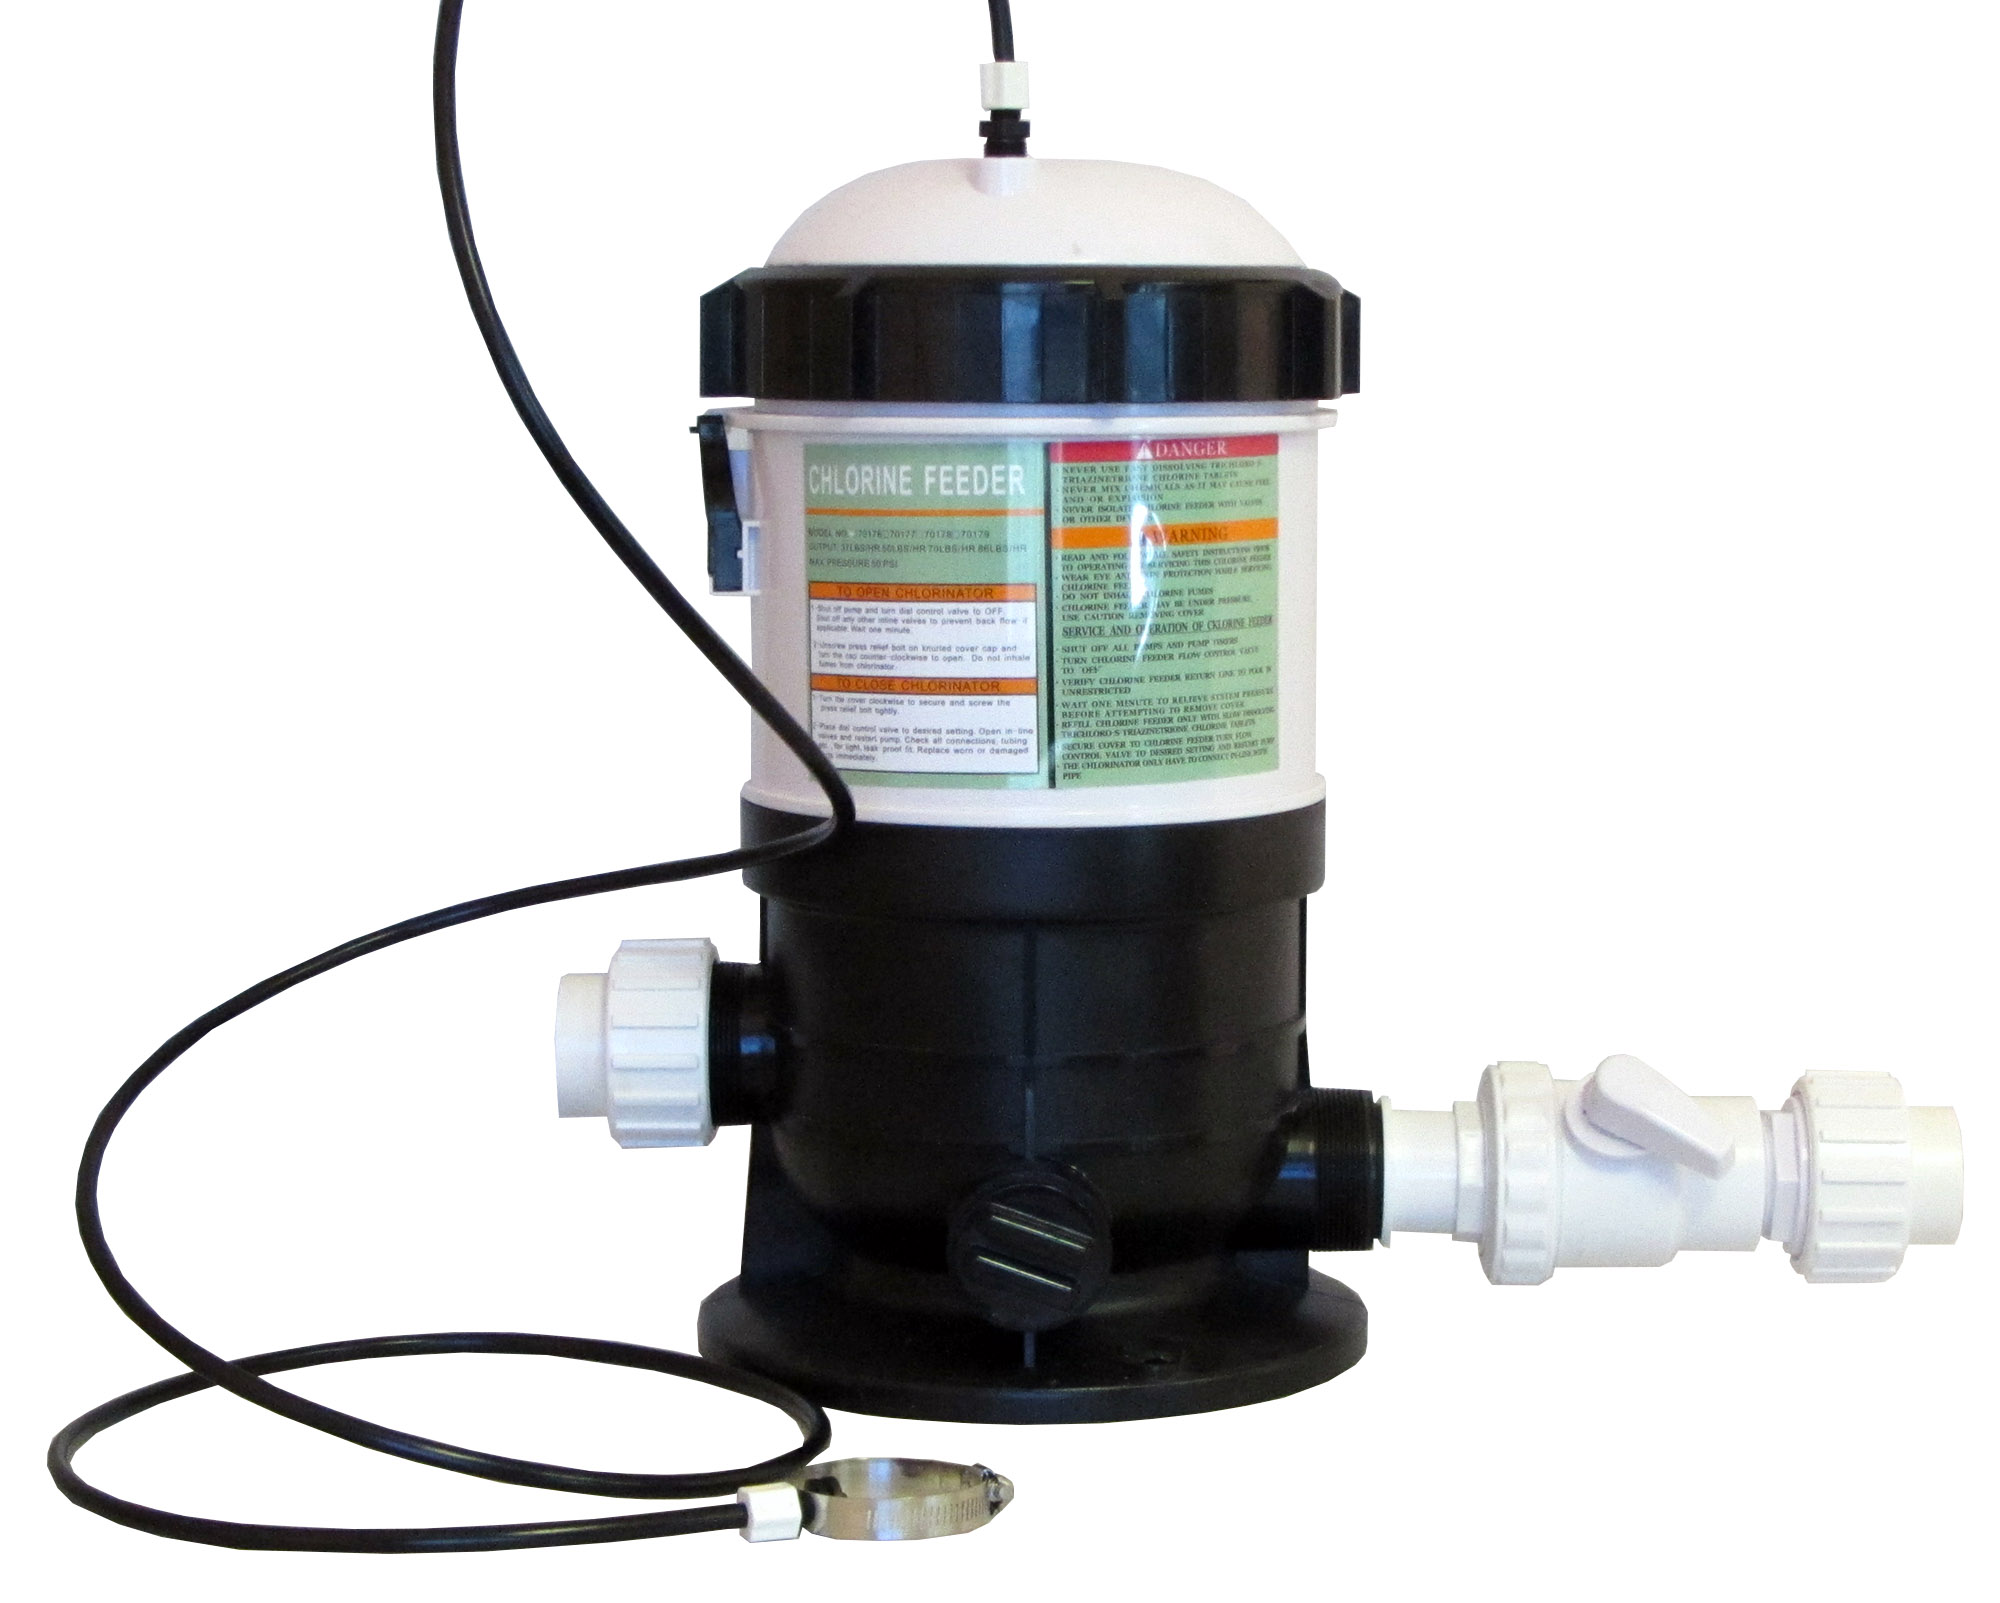 Automatic Chlorinator For Swimming Pools 20 Lbs Capacity With Fittings Ebay